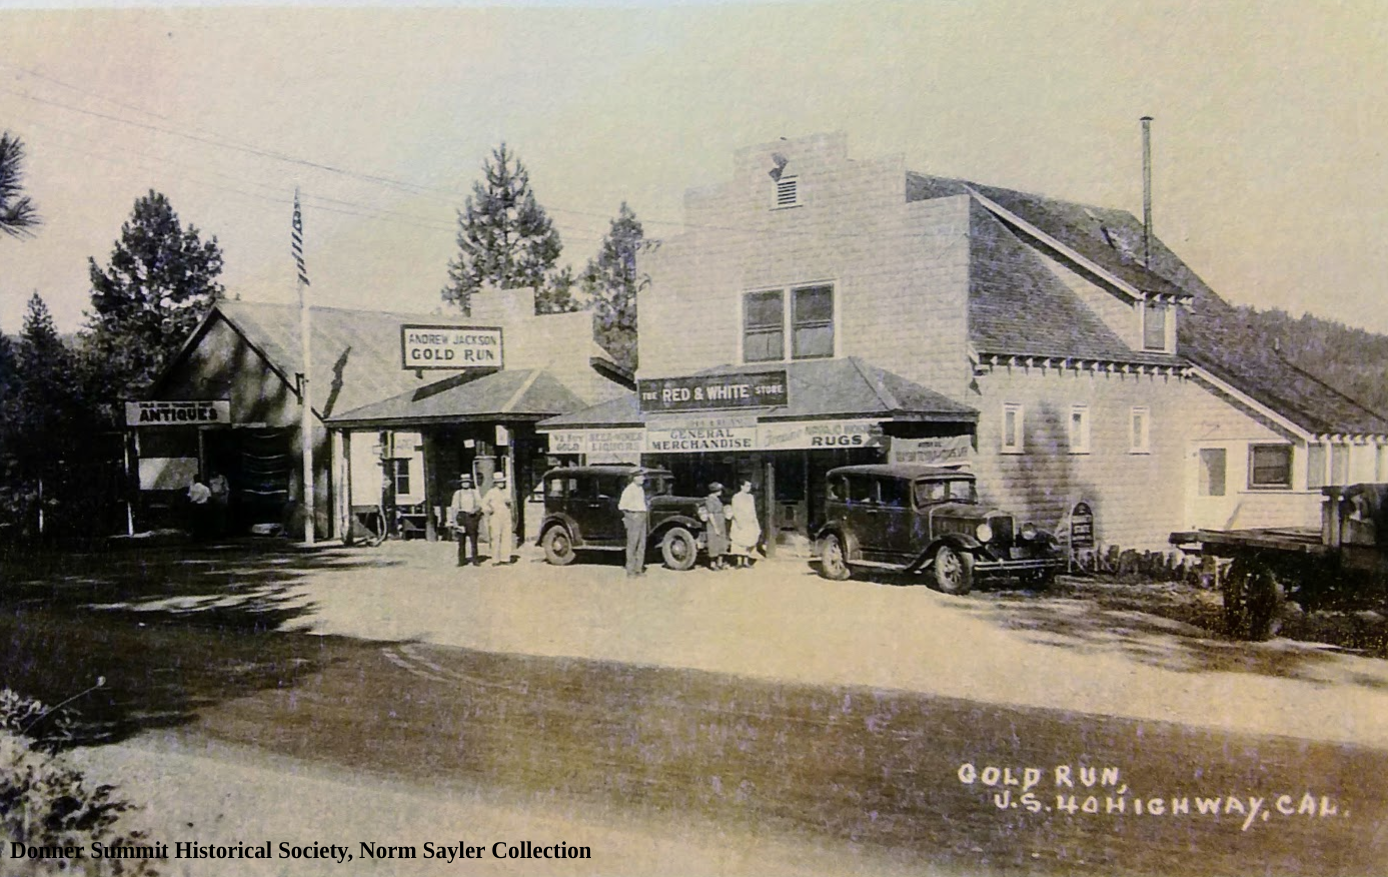 Gold Run on Highway 40. Donner Summit Historical Society, Norm Sayler collection